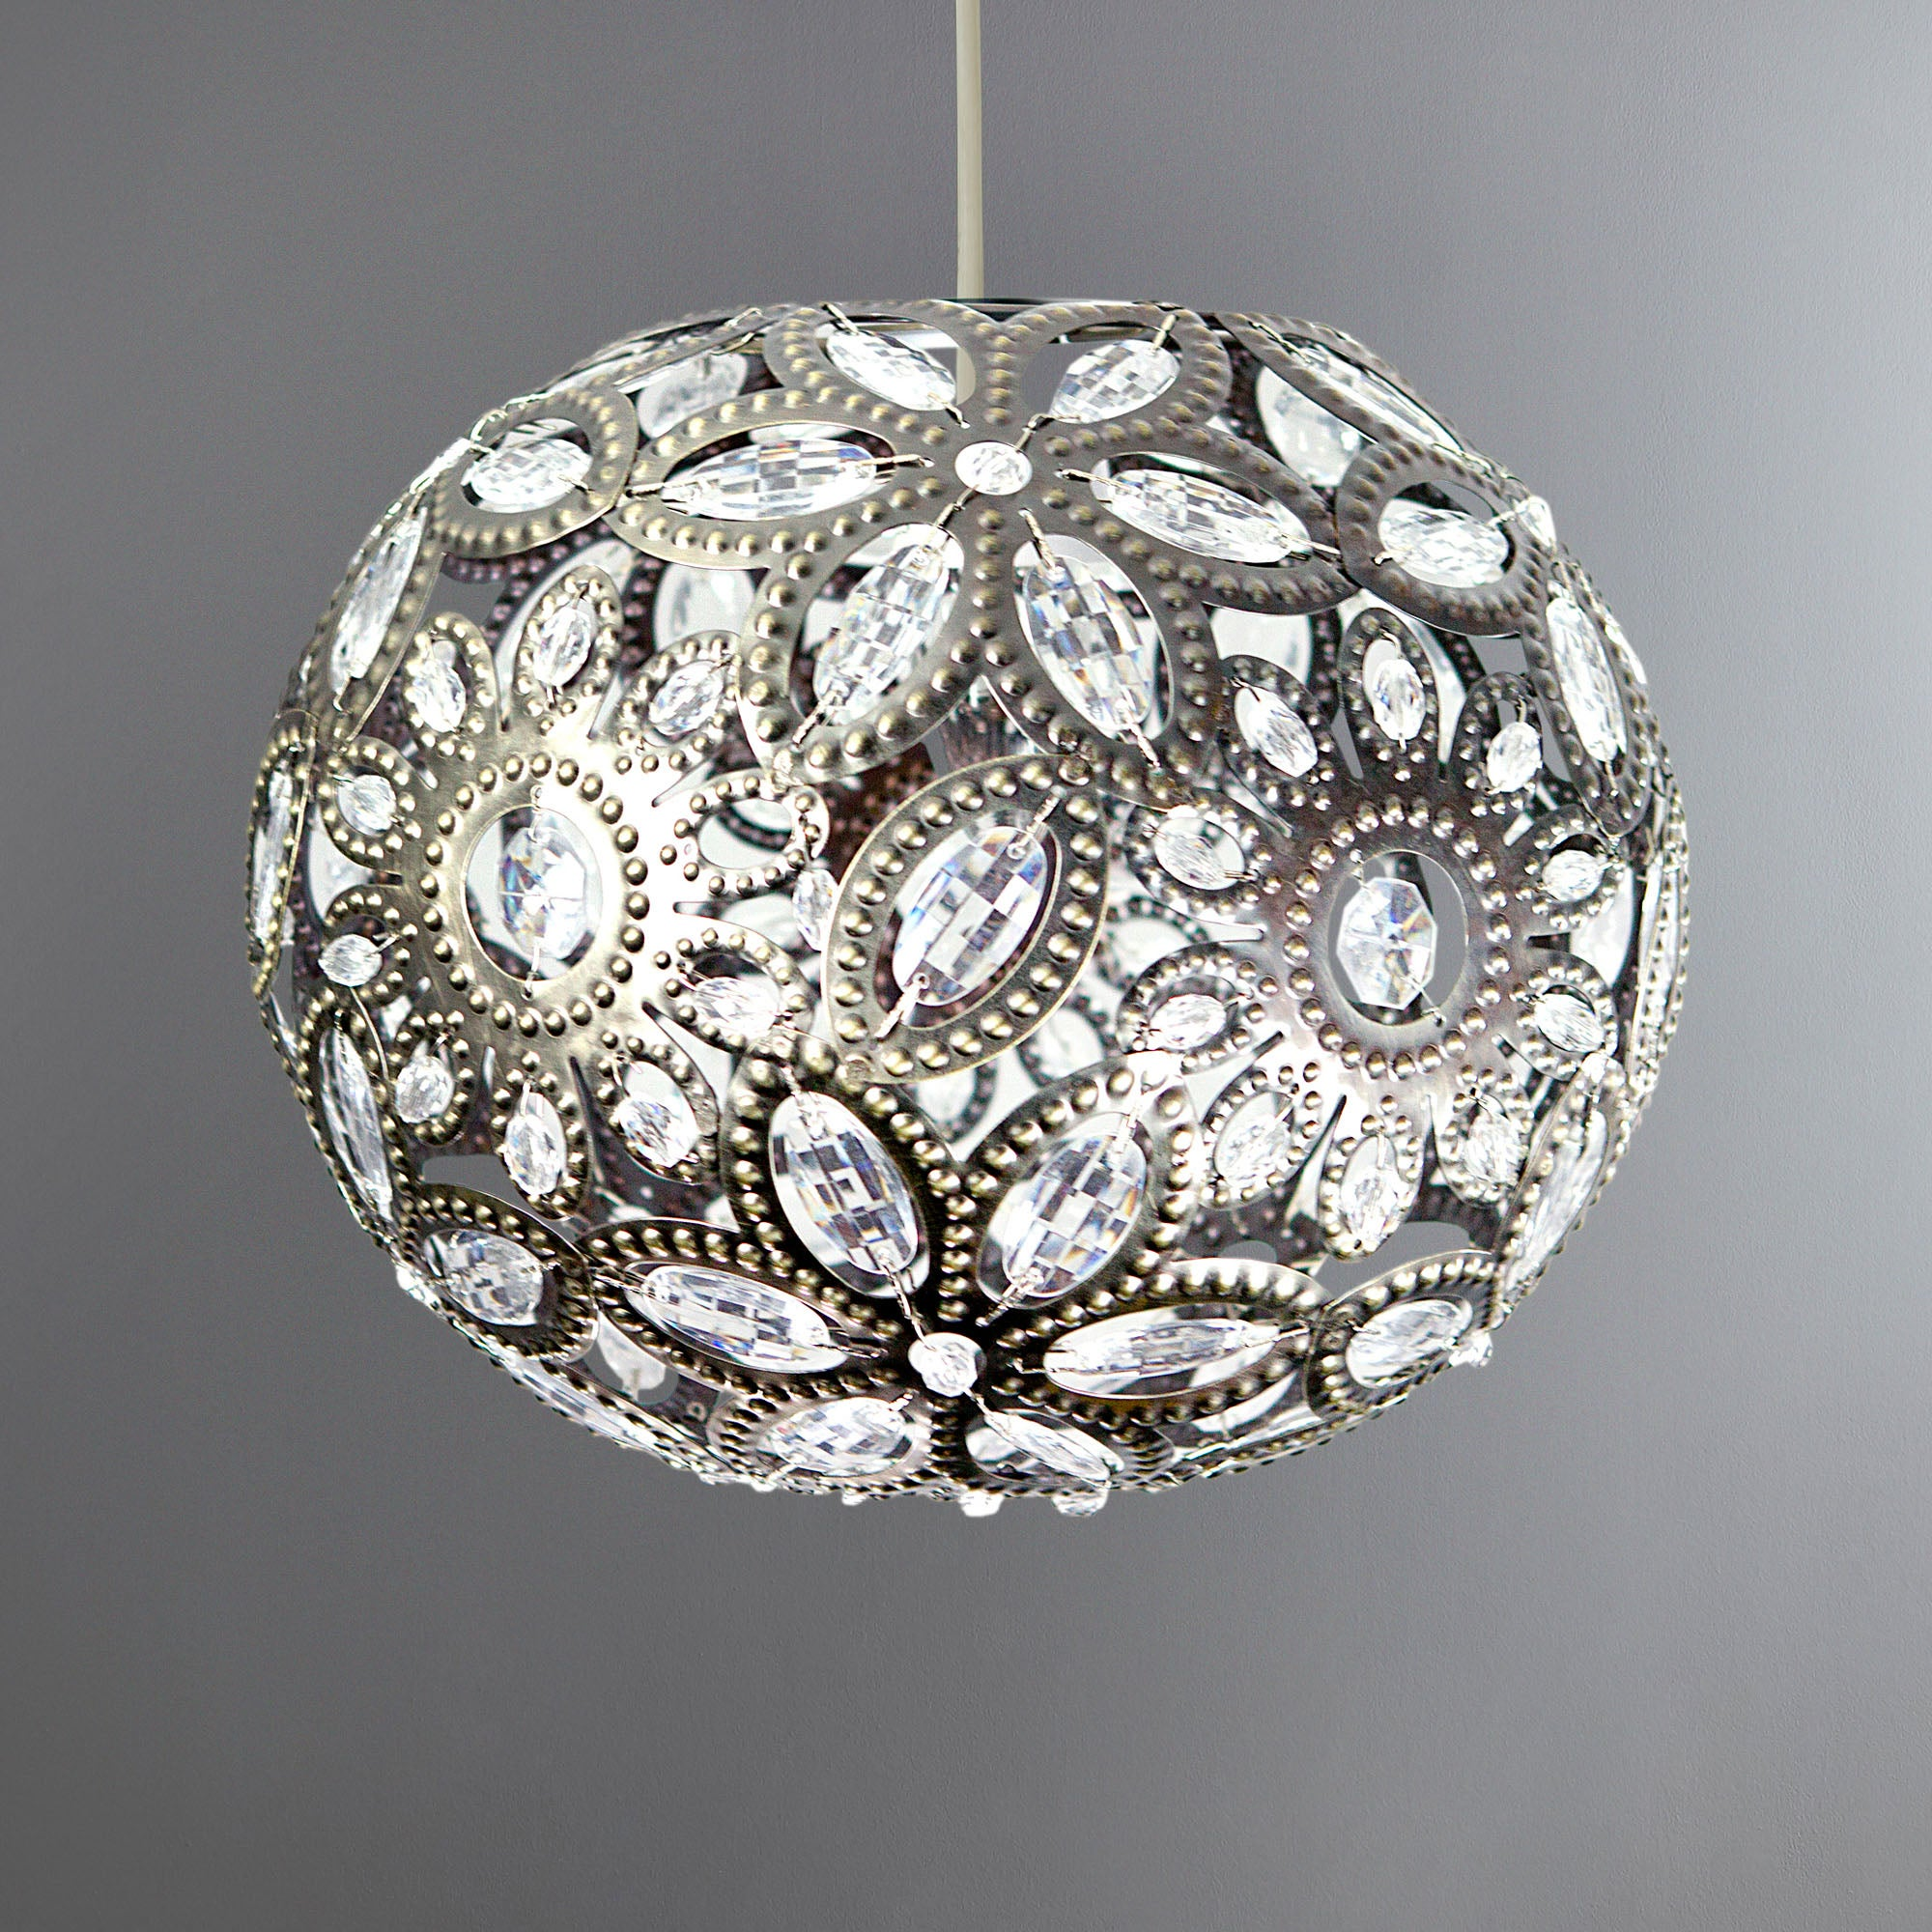 Marrakesh Ball Pendant